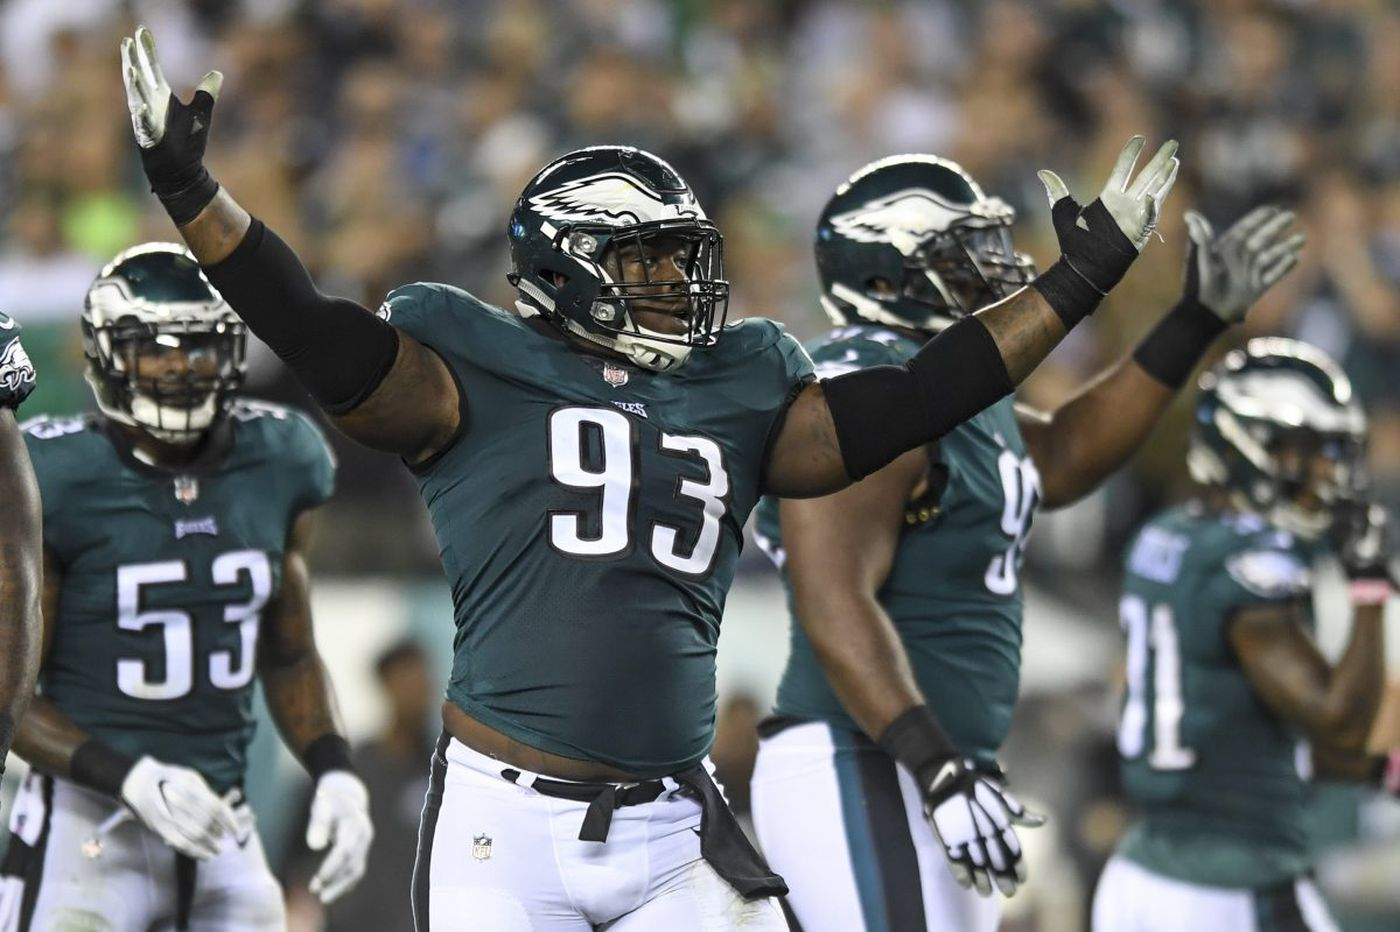 Why is Tim Jernigan so valuable to the Eagles?